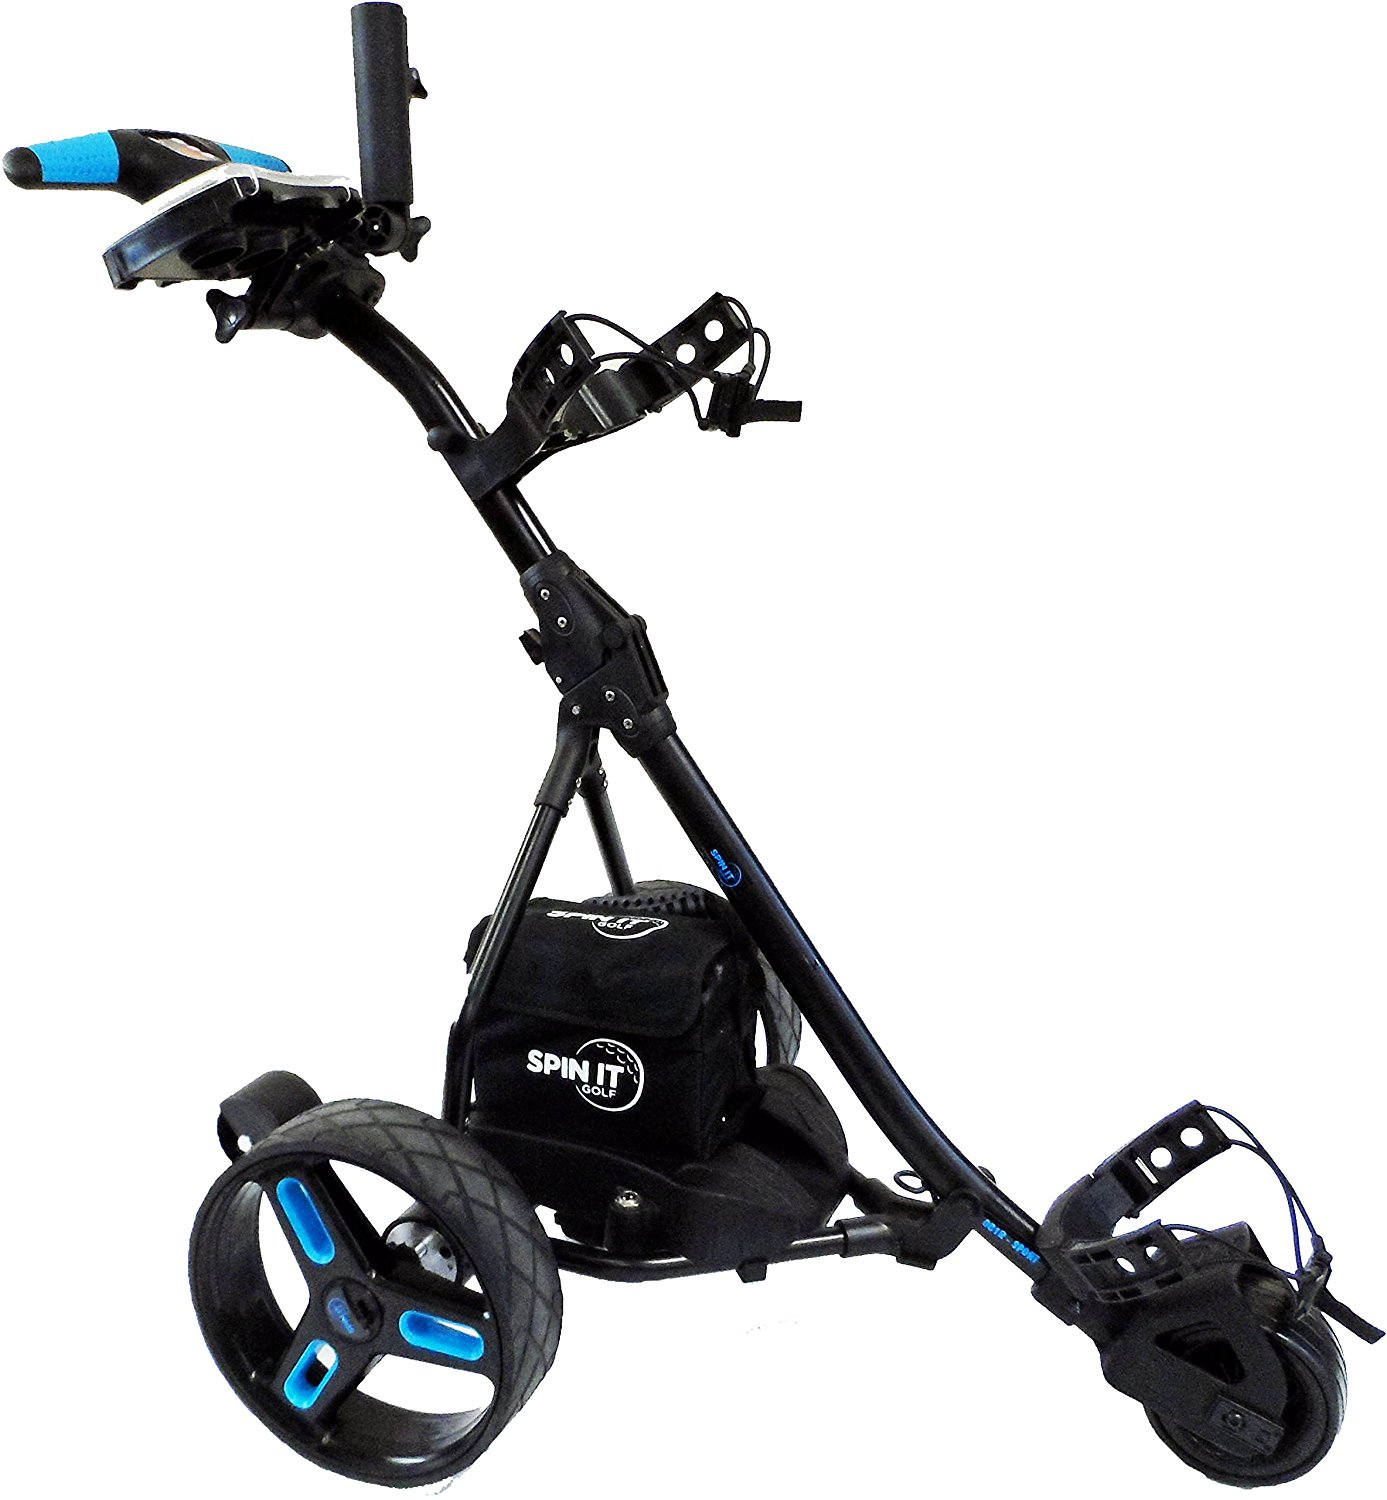 Buy Electric Motorized Golf Trolley Carts for Best Prices!